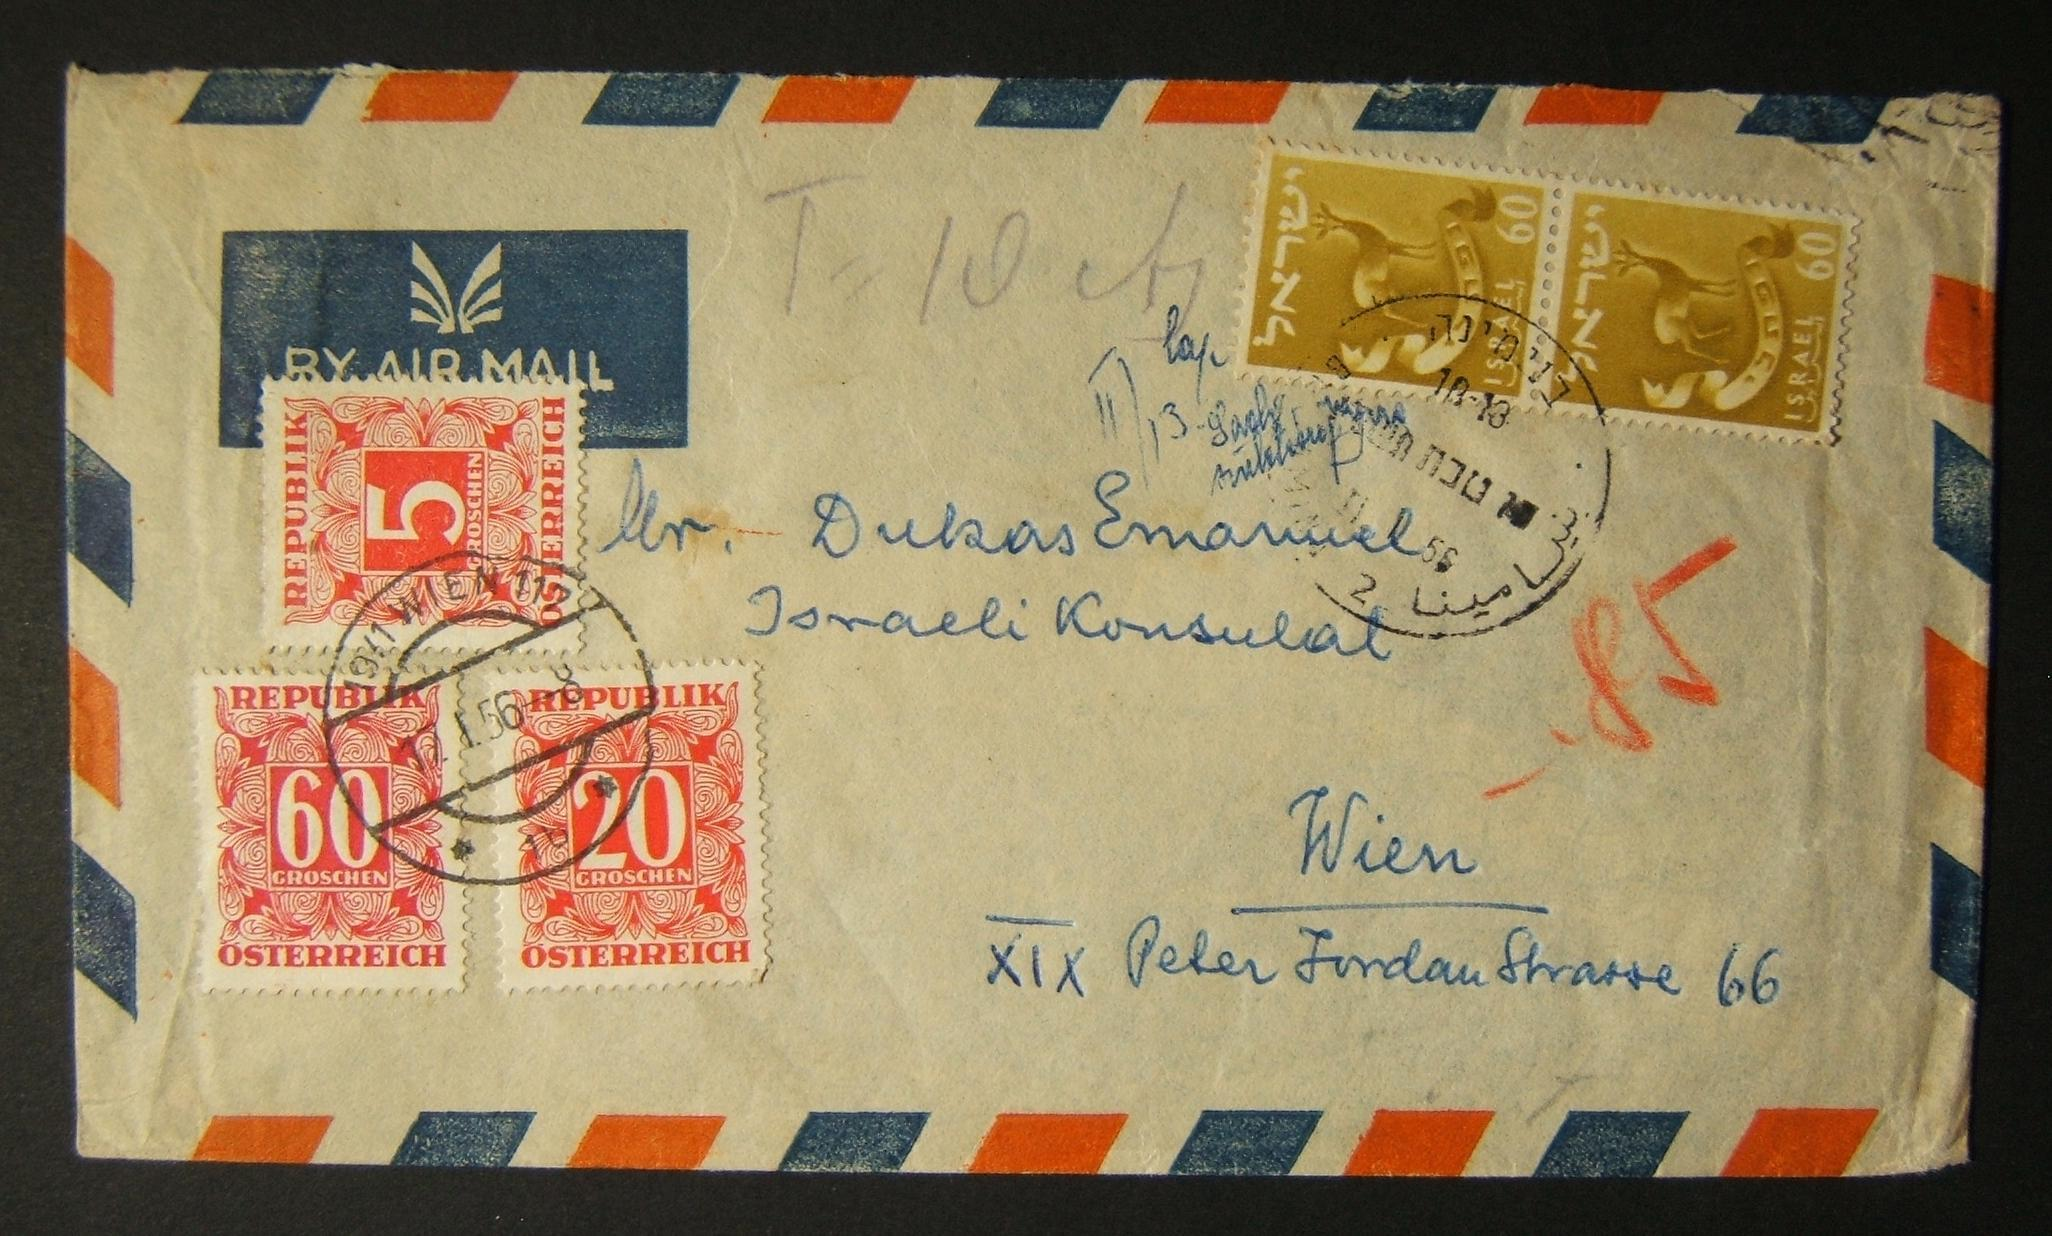 1/1956 underfranked airmail to Austria during rate-change grace period - taxed